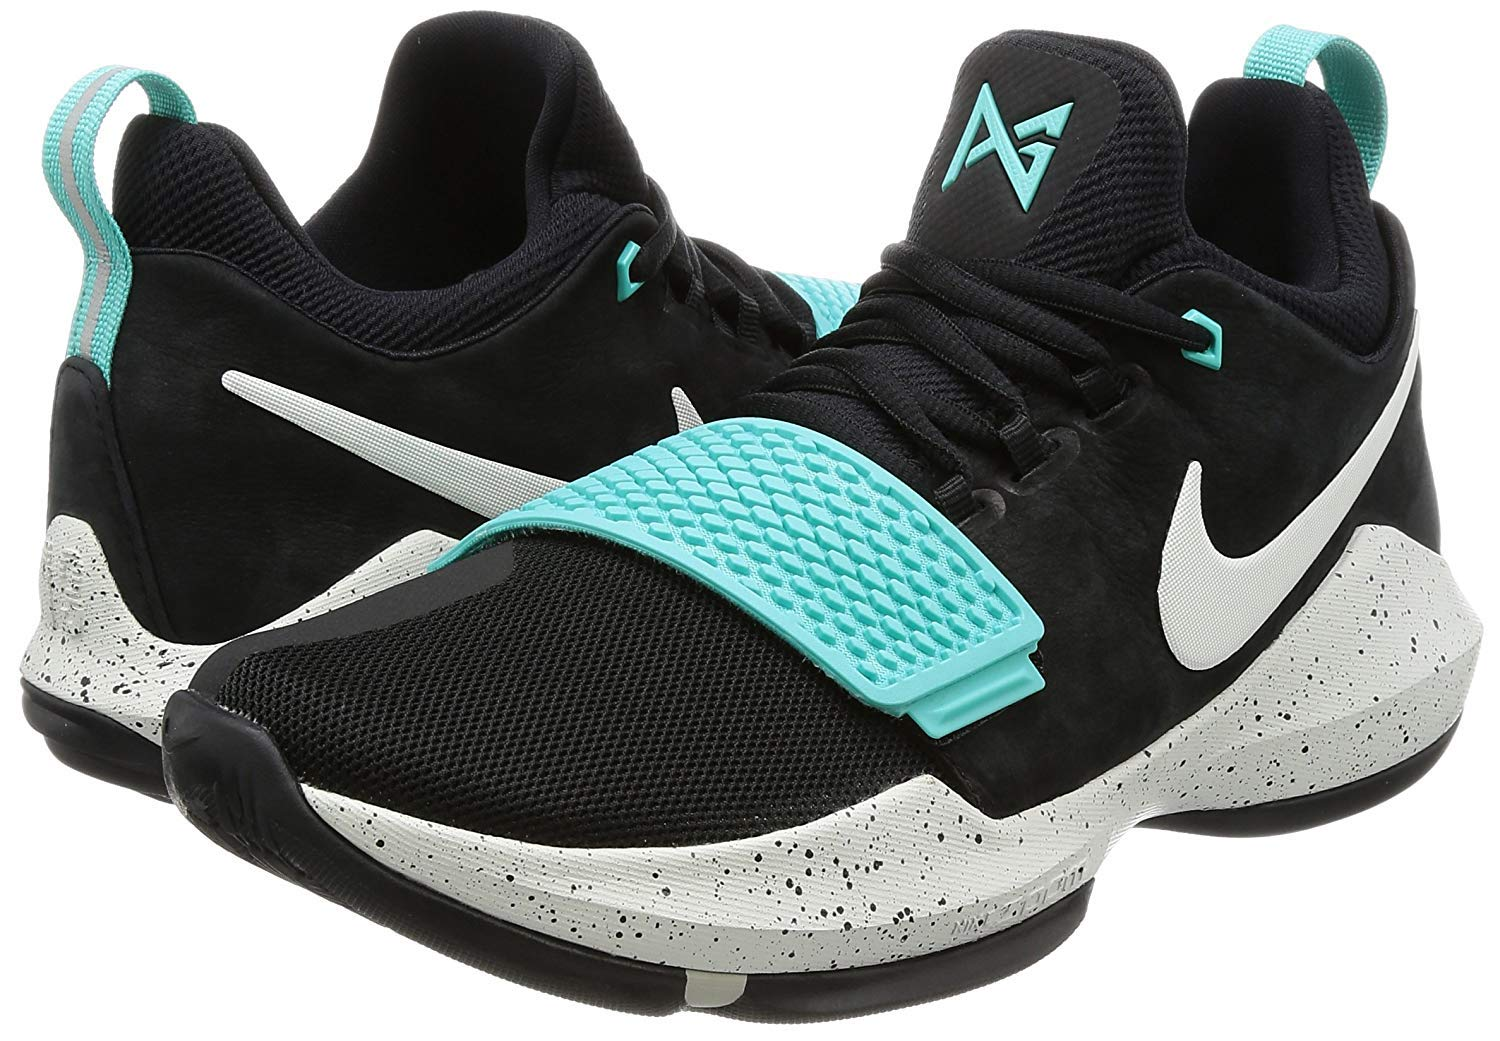 a594d17030a2e4 Galleon - Nike Mens Paul George PG1 Basketball Shoes Black Anthracite Gum  Light Brown Black 878627-004 Size 13